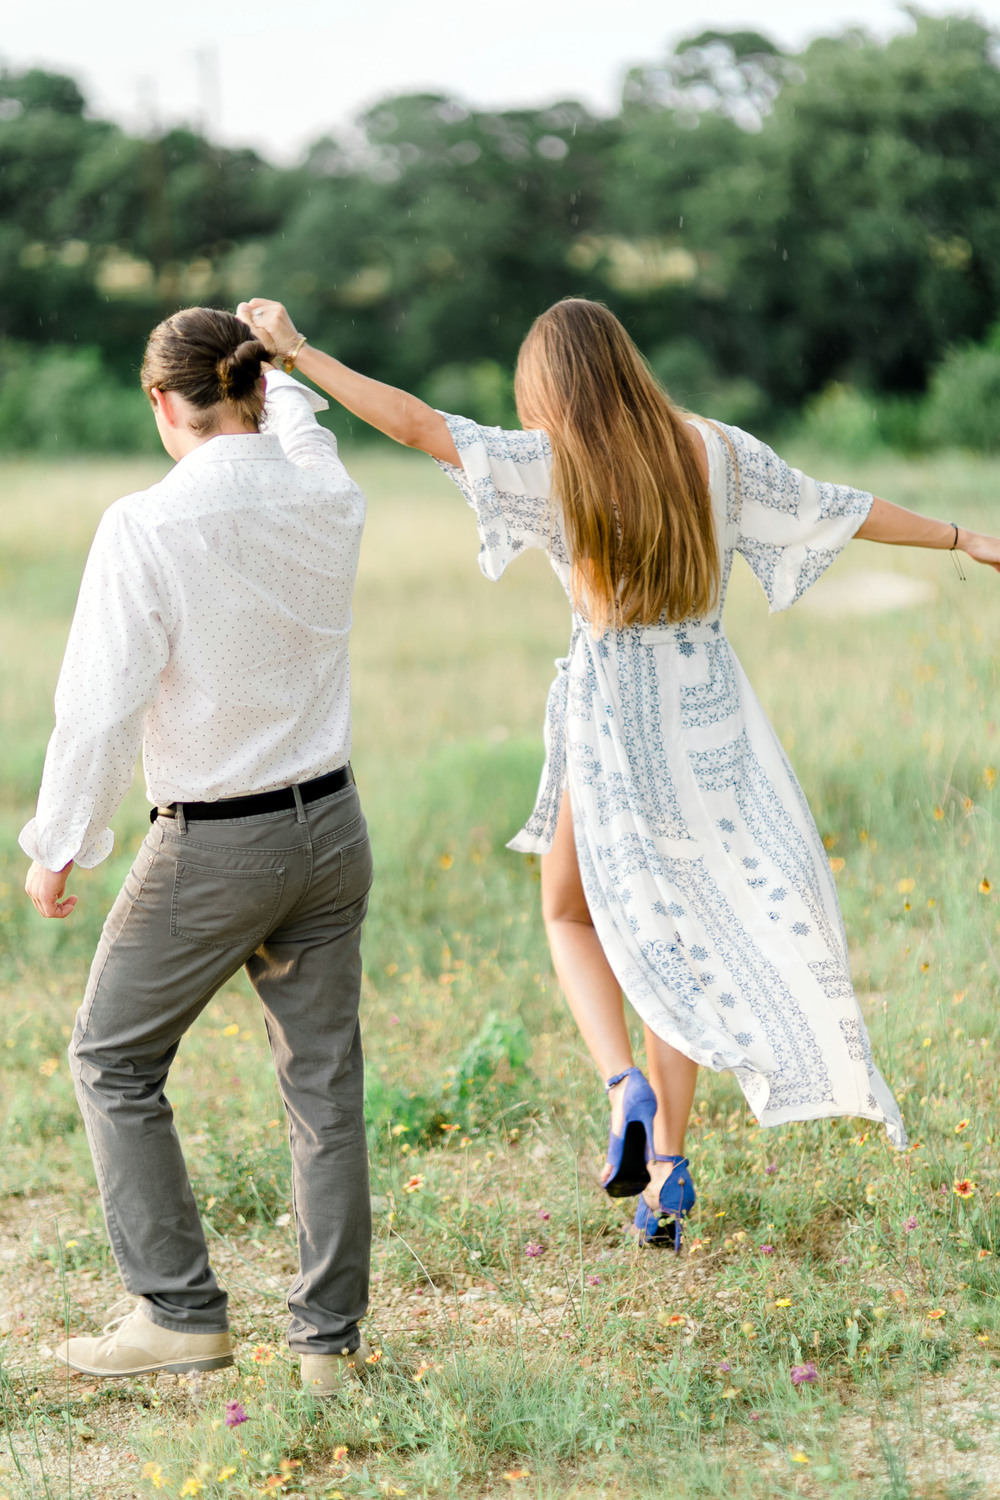 IMGcamp-lucy-boho-engagement-session-austin-texas-wedding-photographer-02.jpg